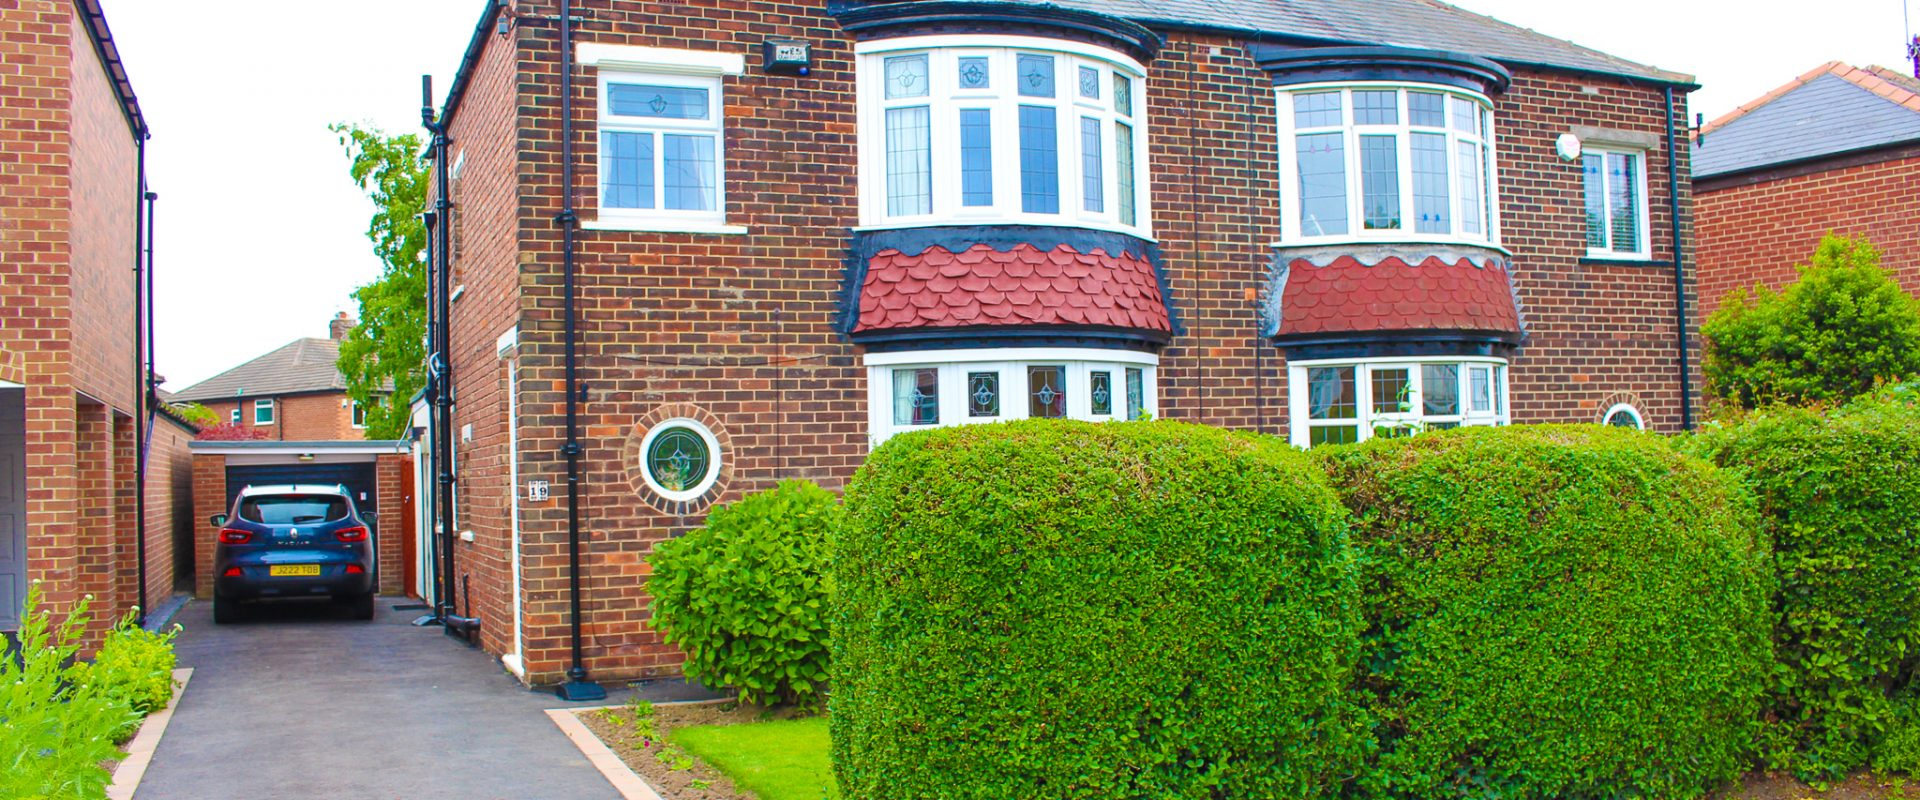 Mandale Road, Middlesbrough, TS5 8AD